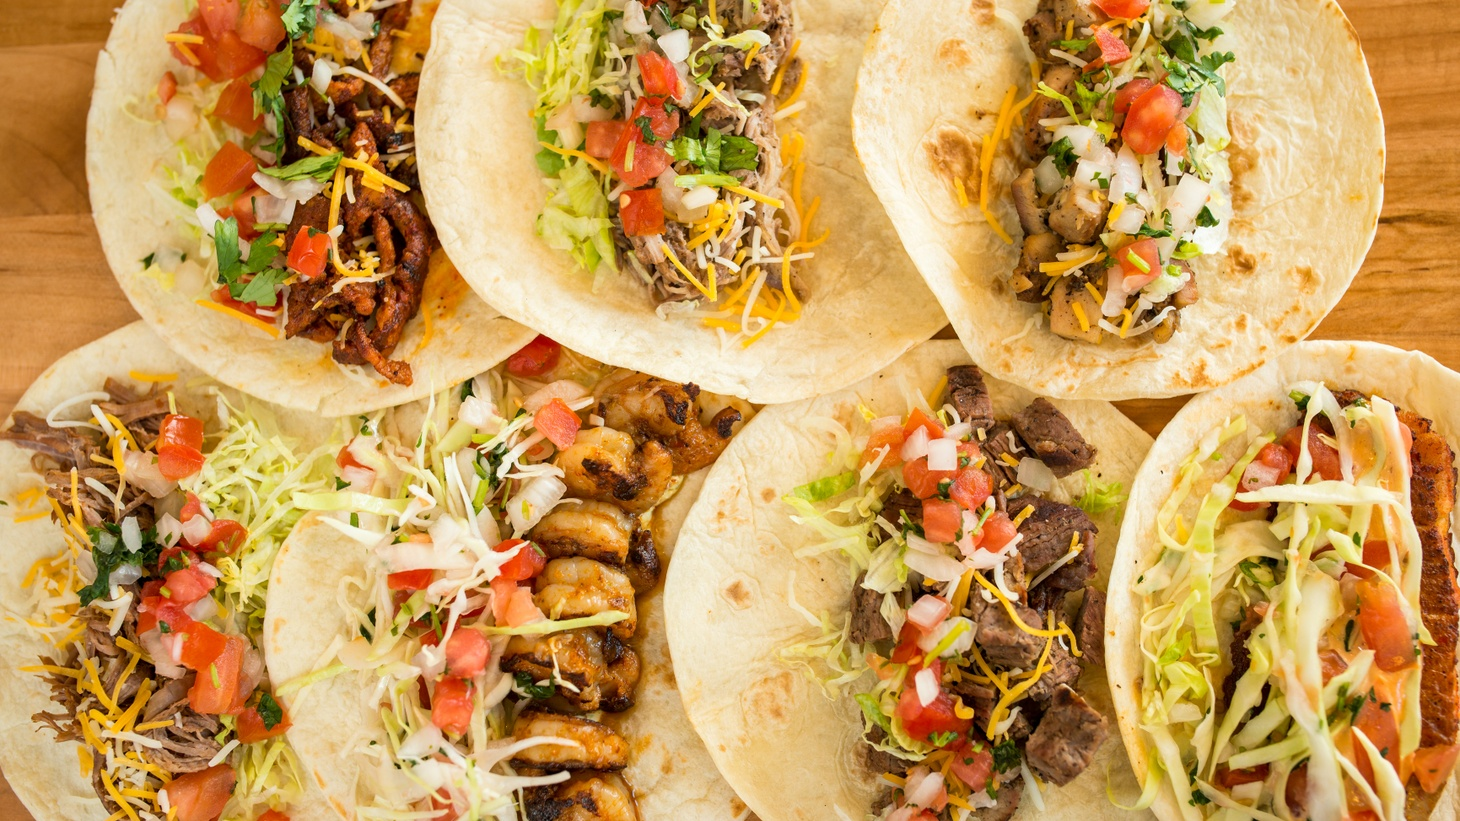 Various tacos from District Taco in Washington DC, Virginia, and Philadelphia.